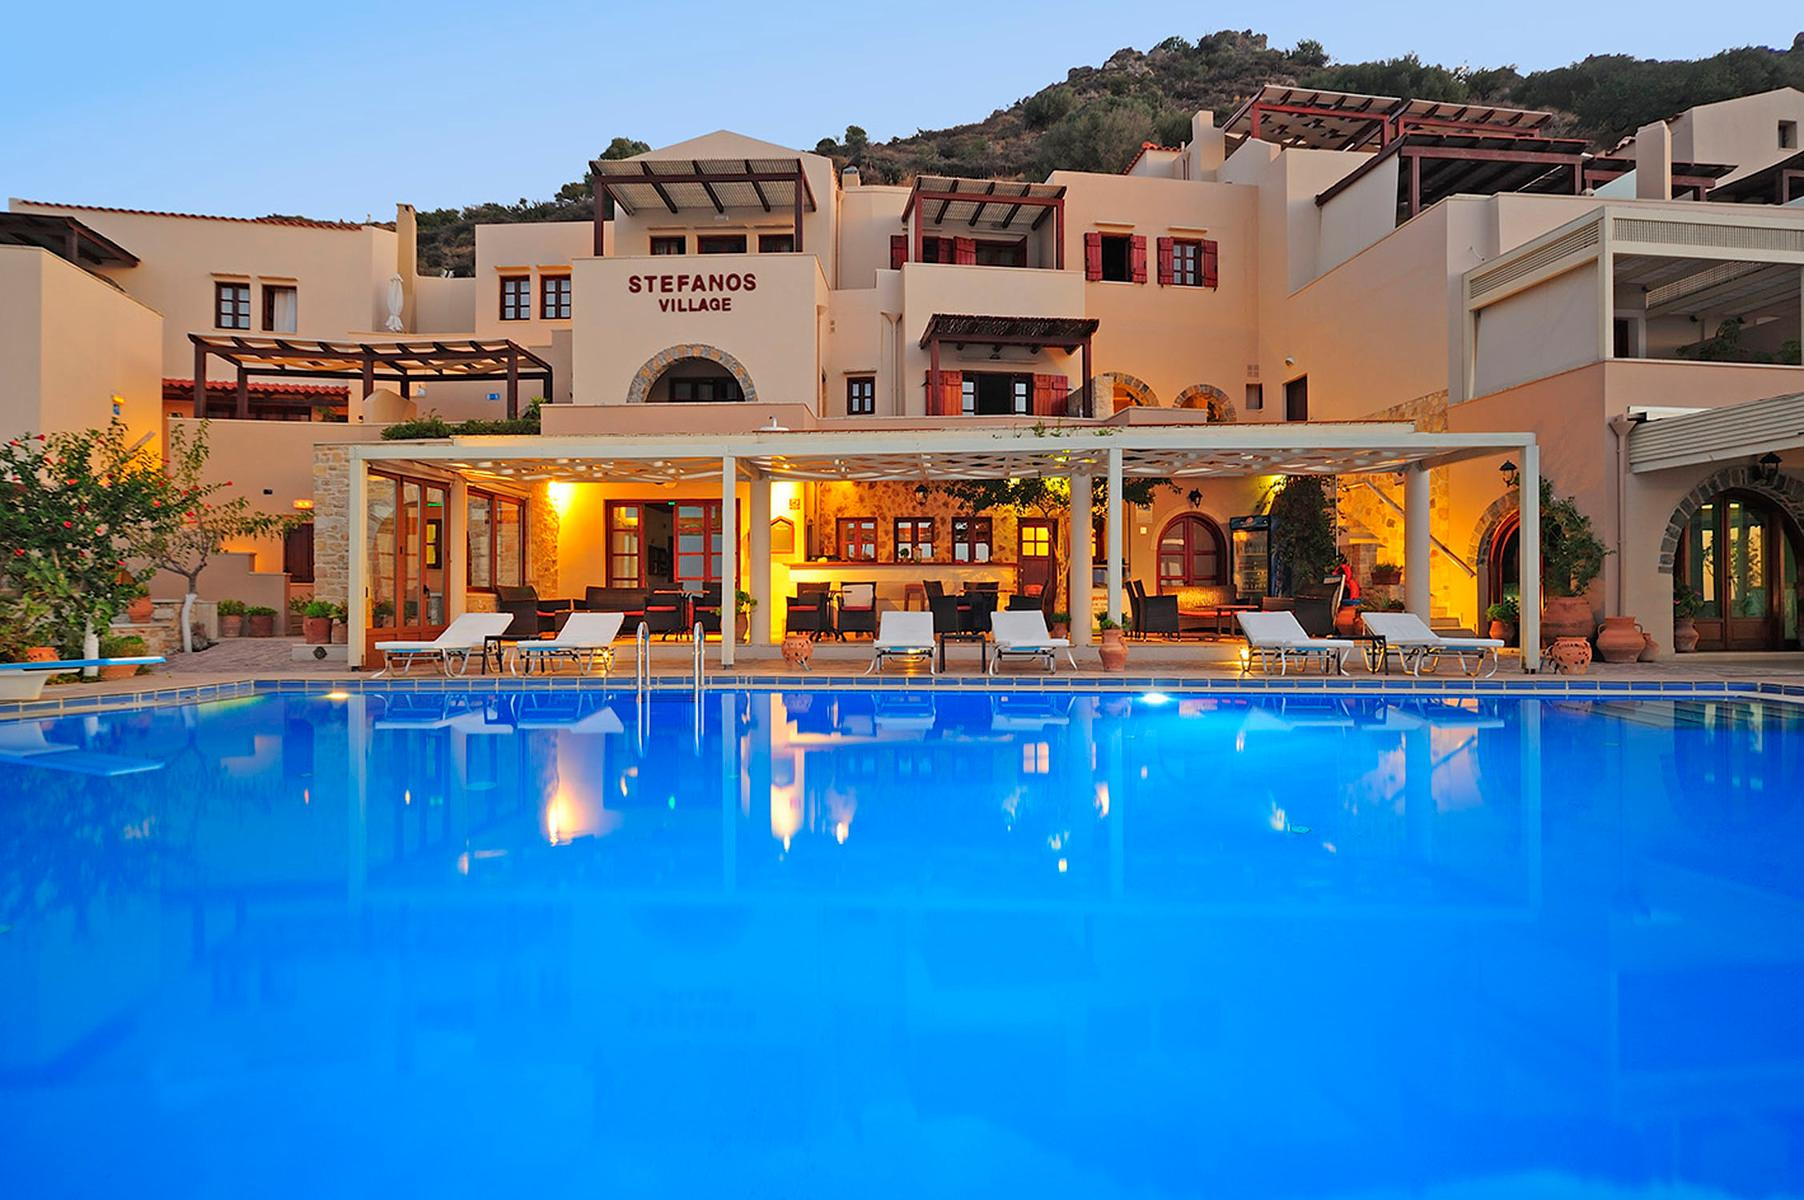 Stefanos Village in Plakias, Crete, Greek Islands